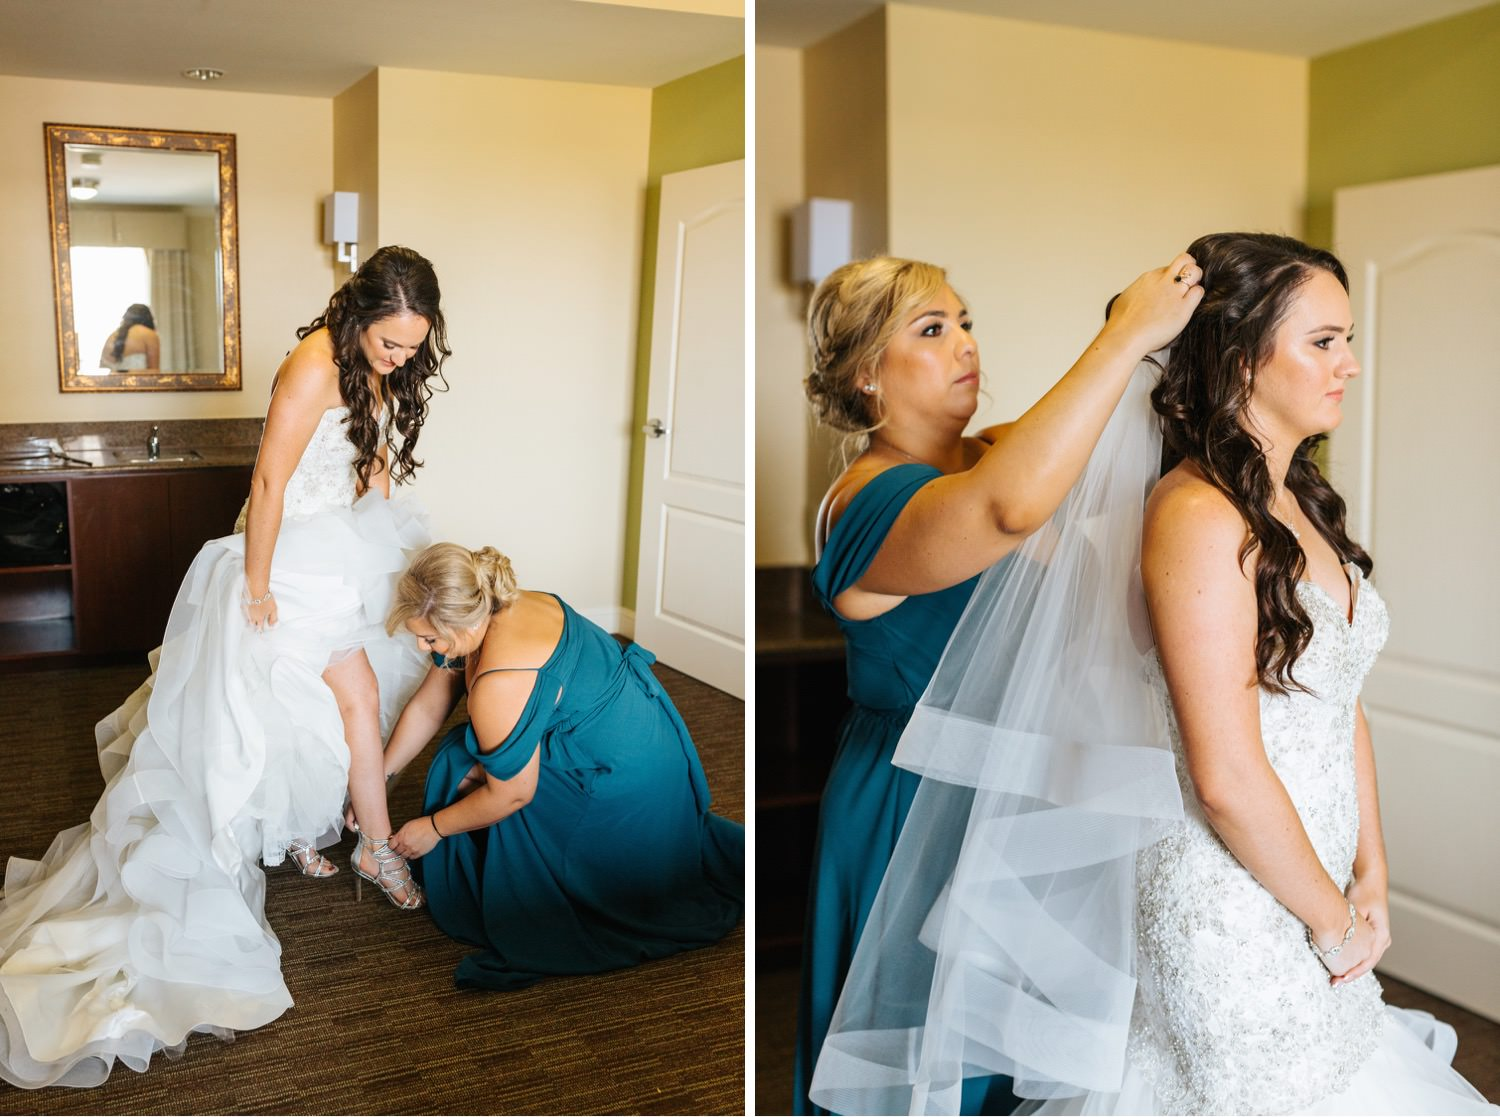 Maid of Honor putting in veil and helping bride put on her heels - https://brittneyhannonphotography.com